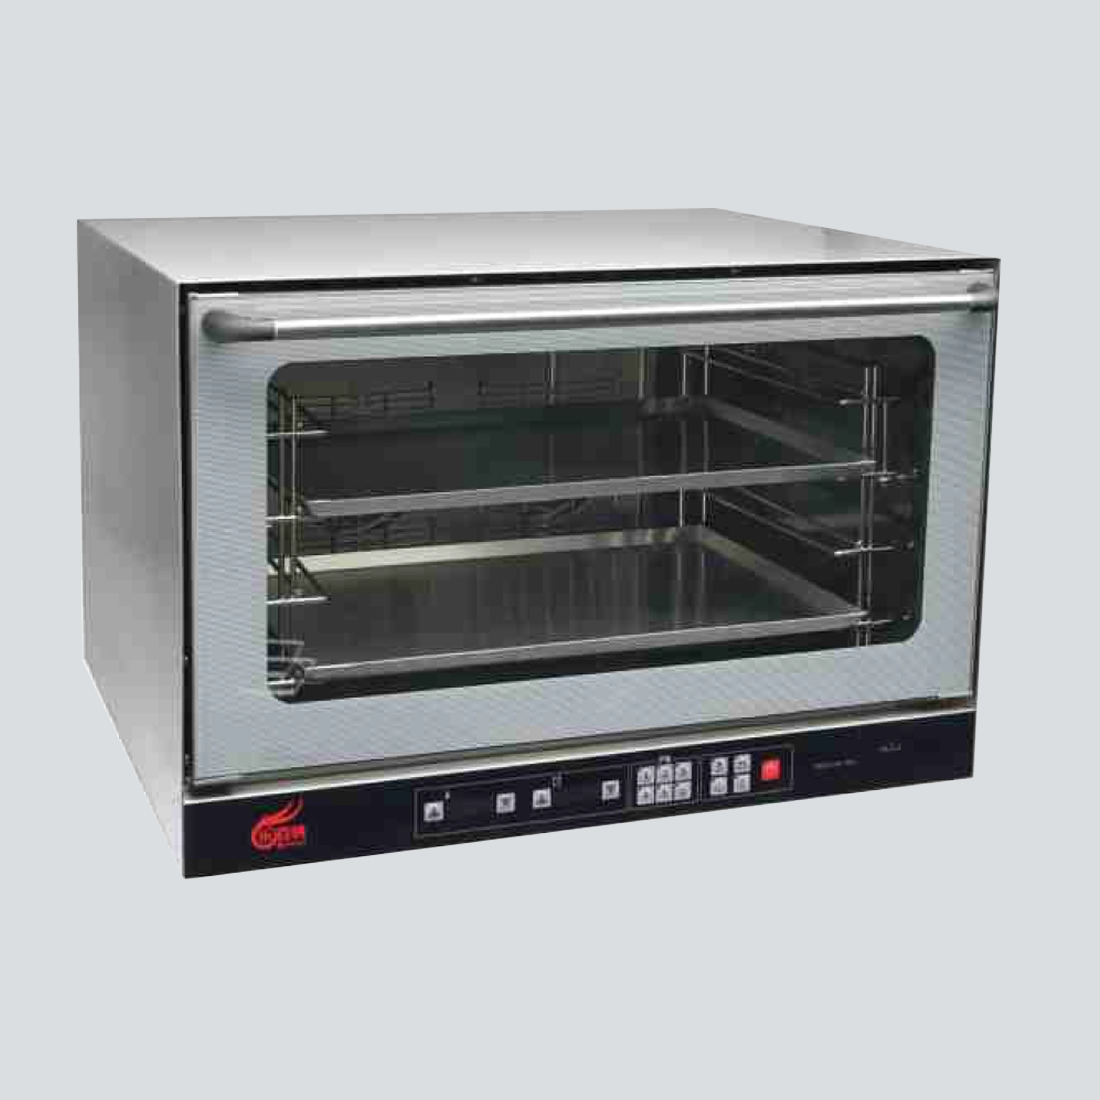 Digital Convection Oven with 5 Memories - YSD-8AD